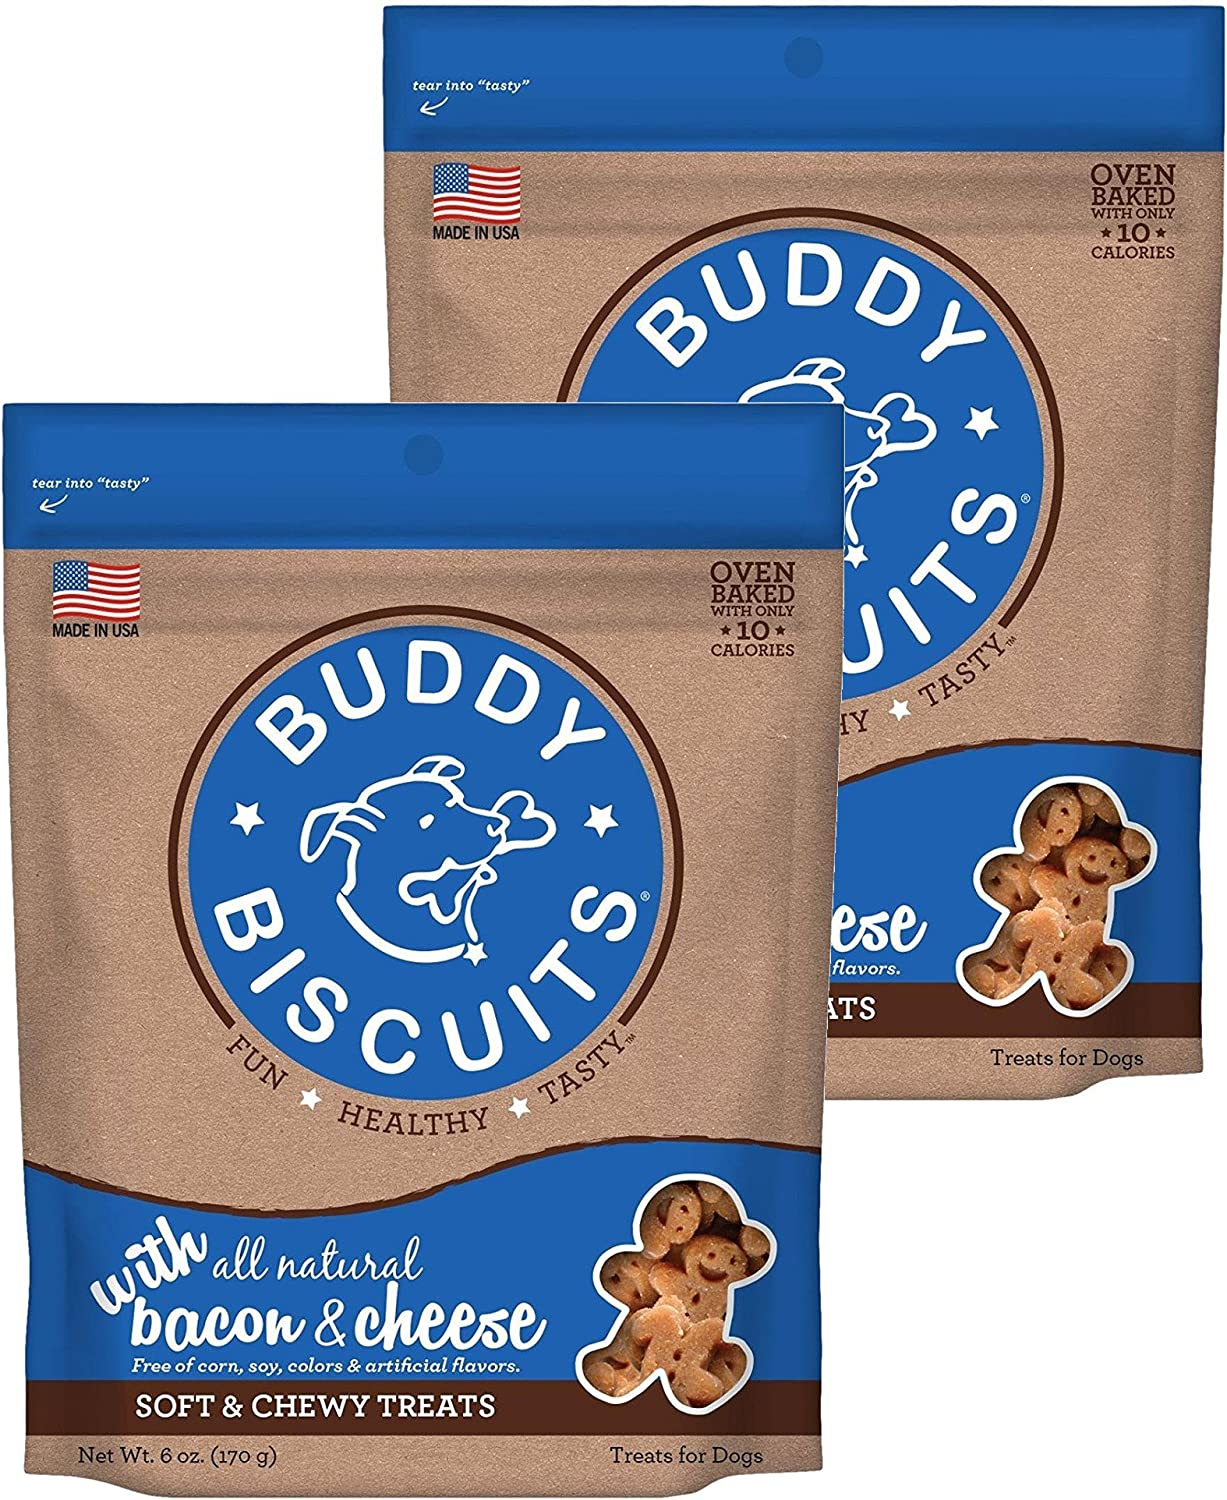 Buddy Biscuits Soft & Chewy Dog Treats with All Natural Bacon & Cheese (2 Pack) 6 oz Each